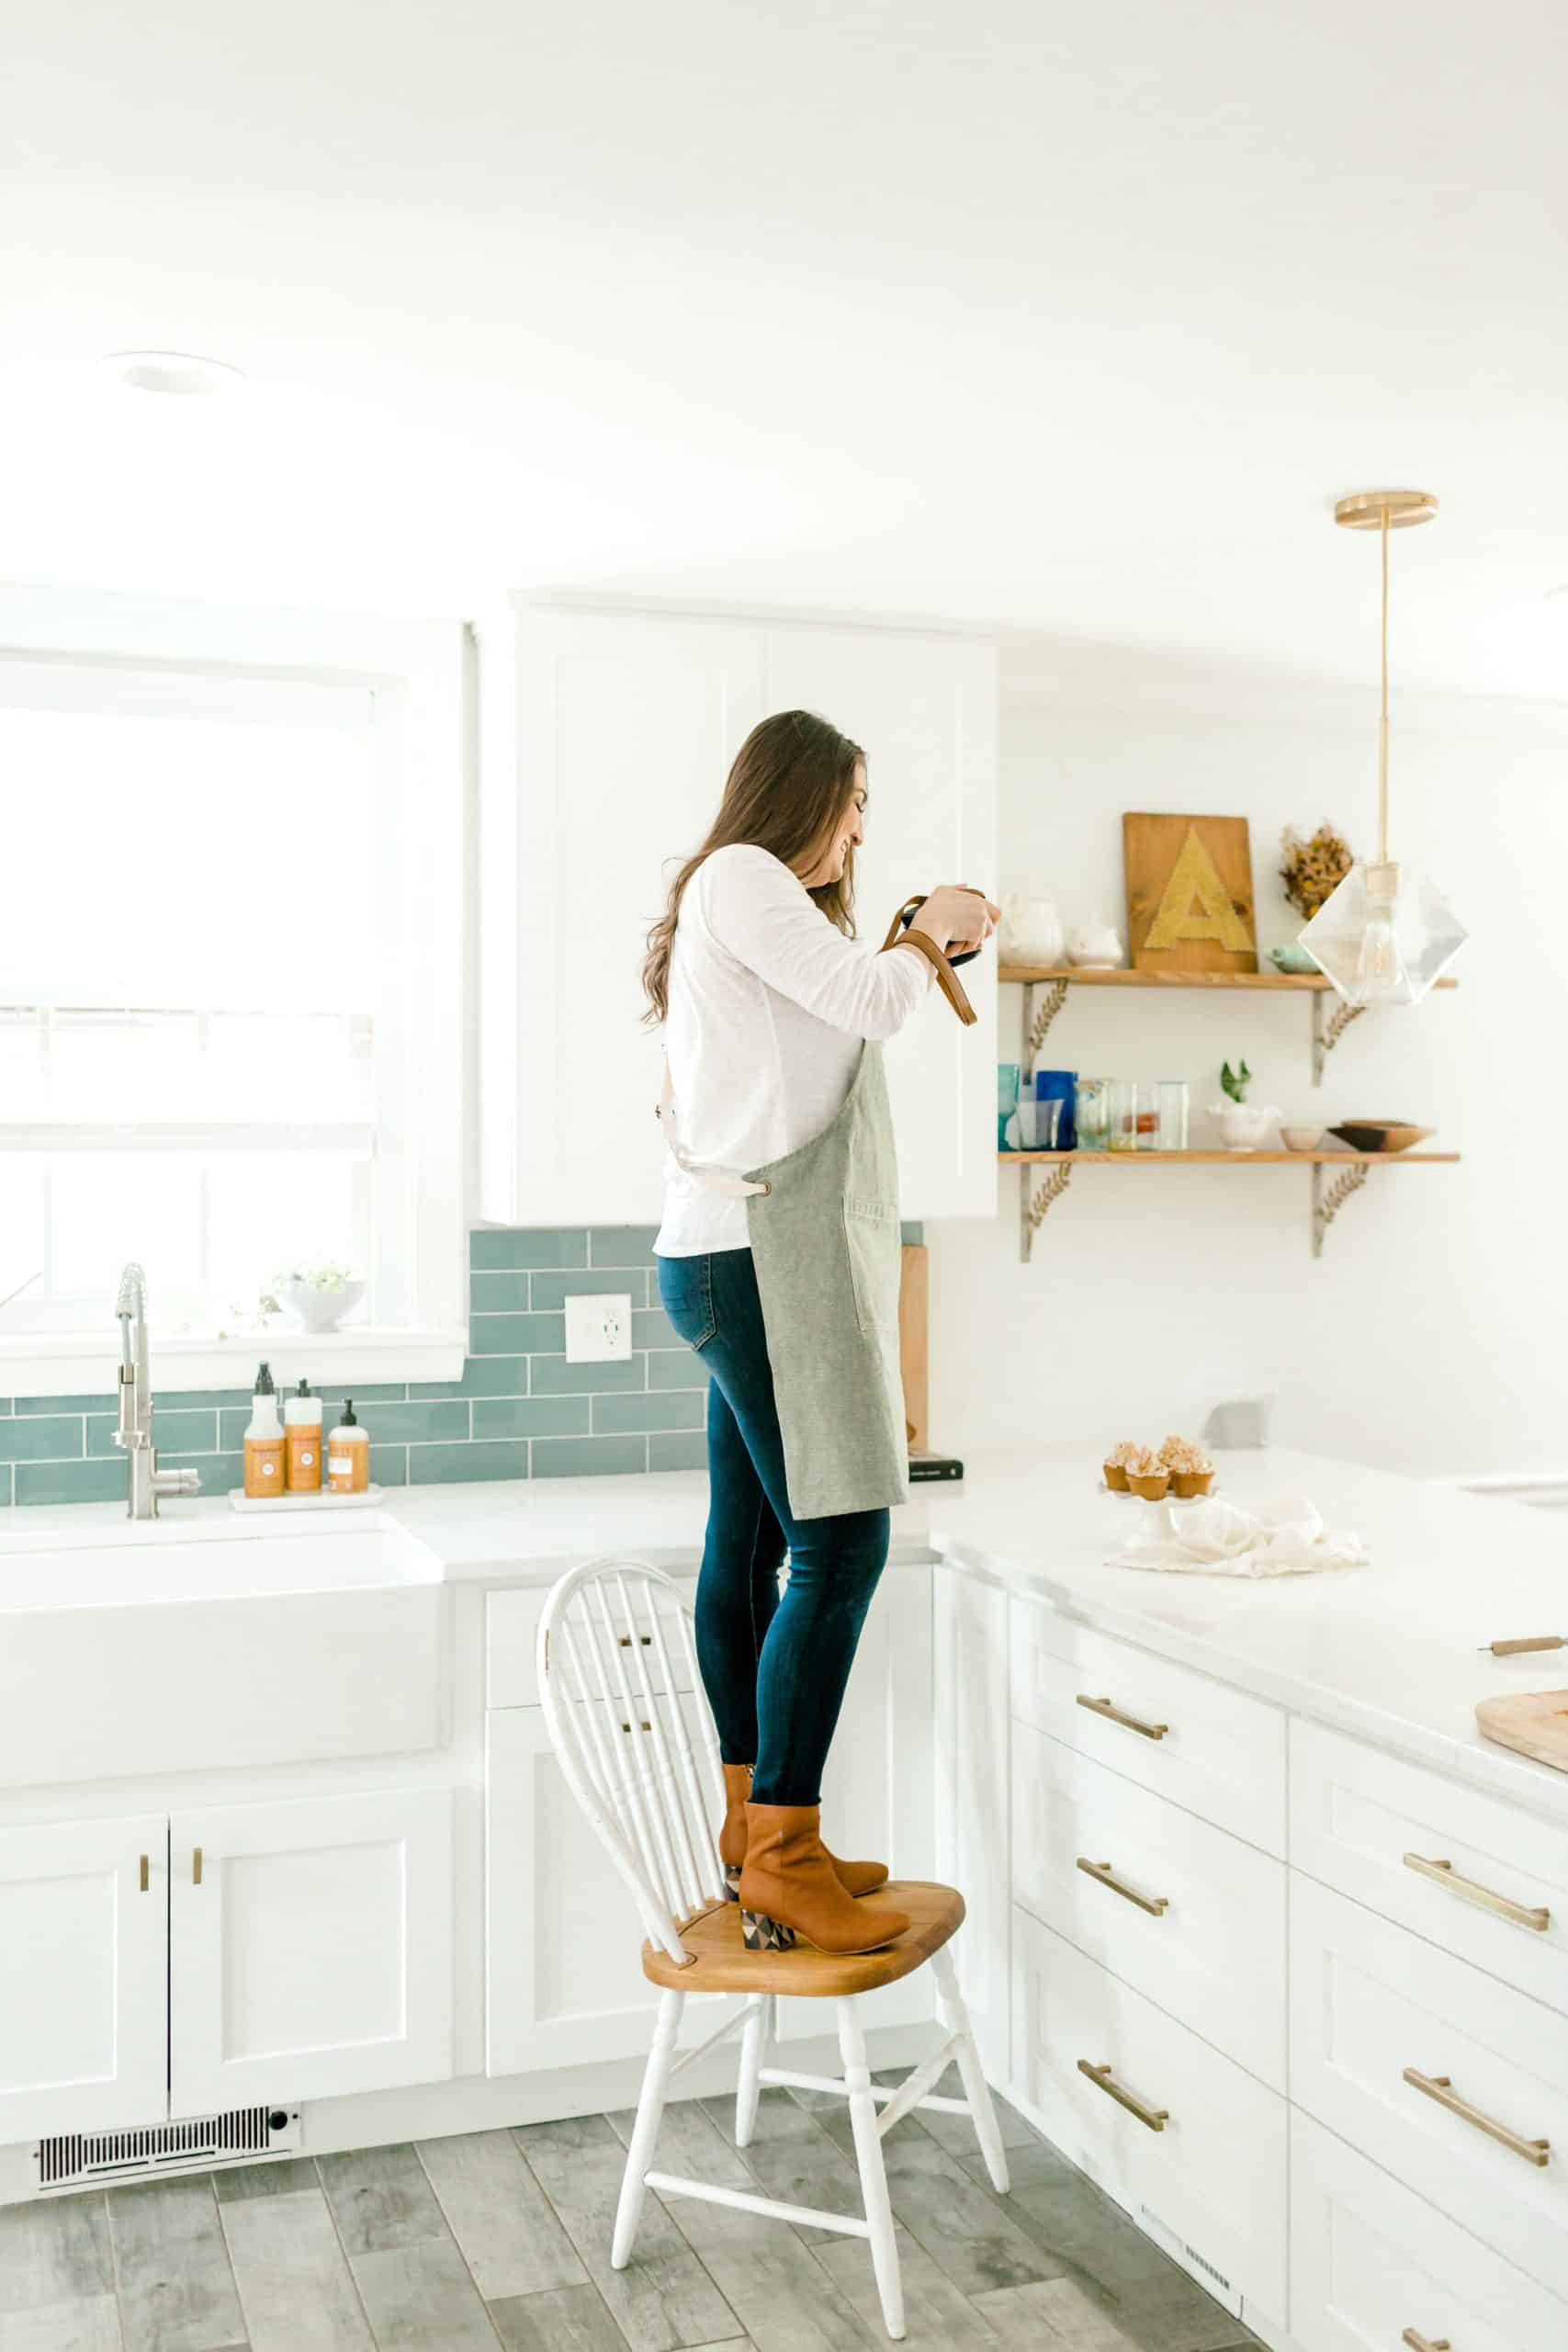 A person standing on chair in a kitchen